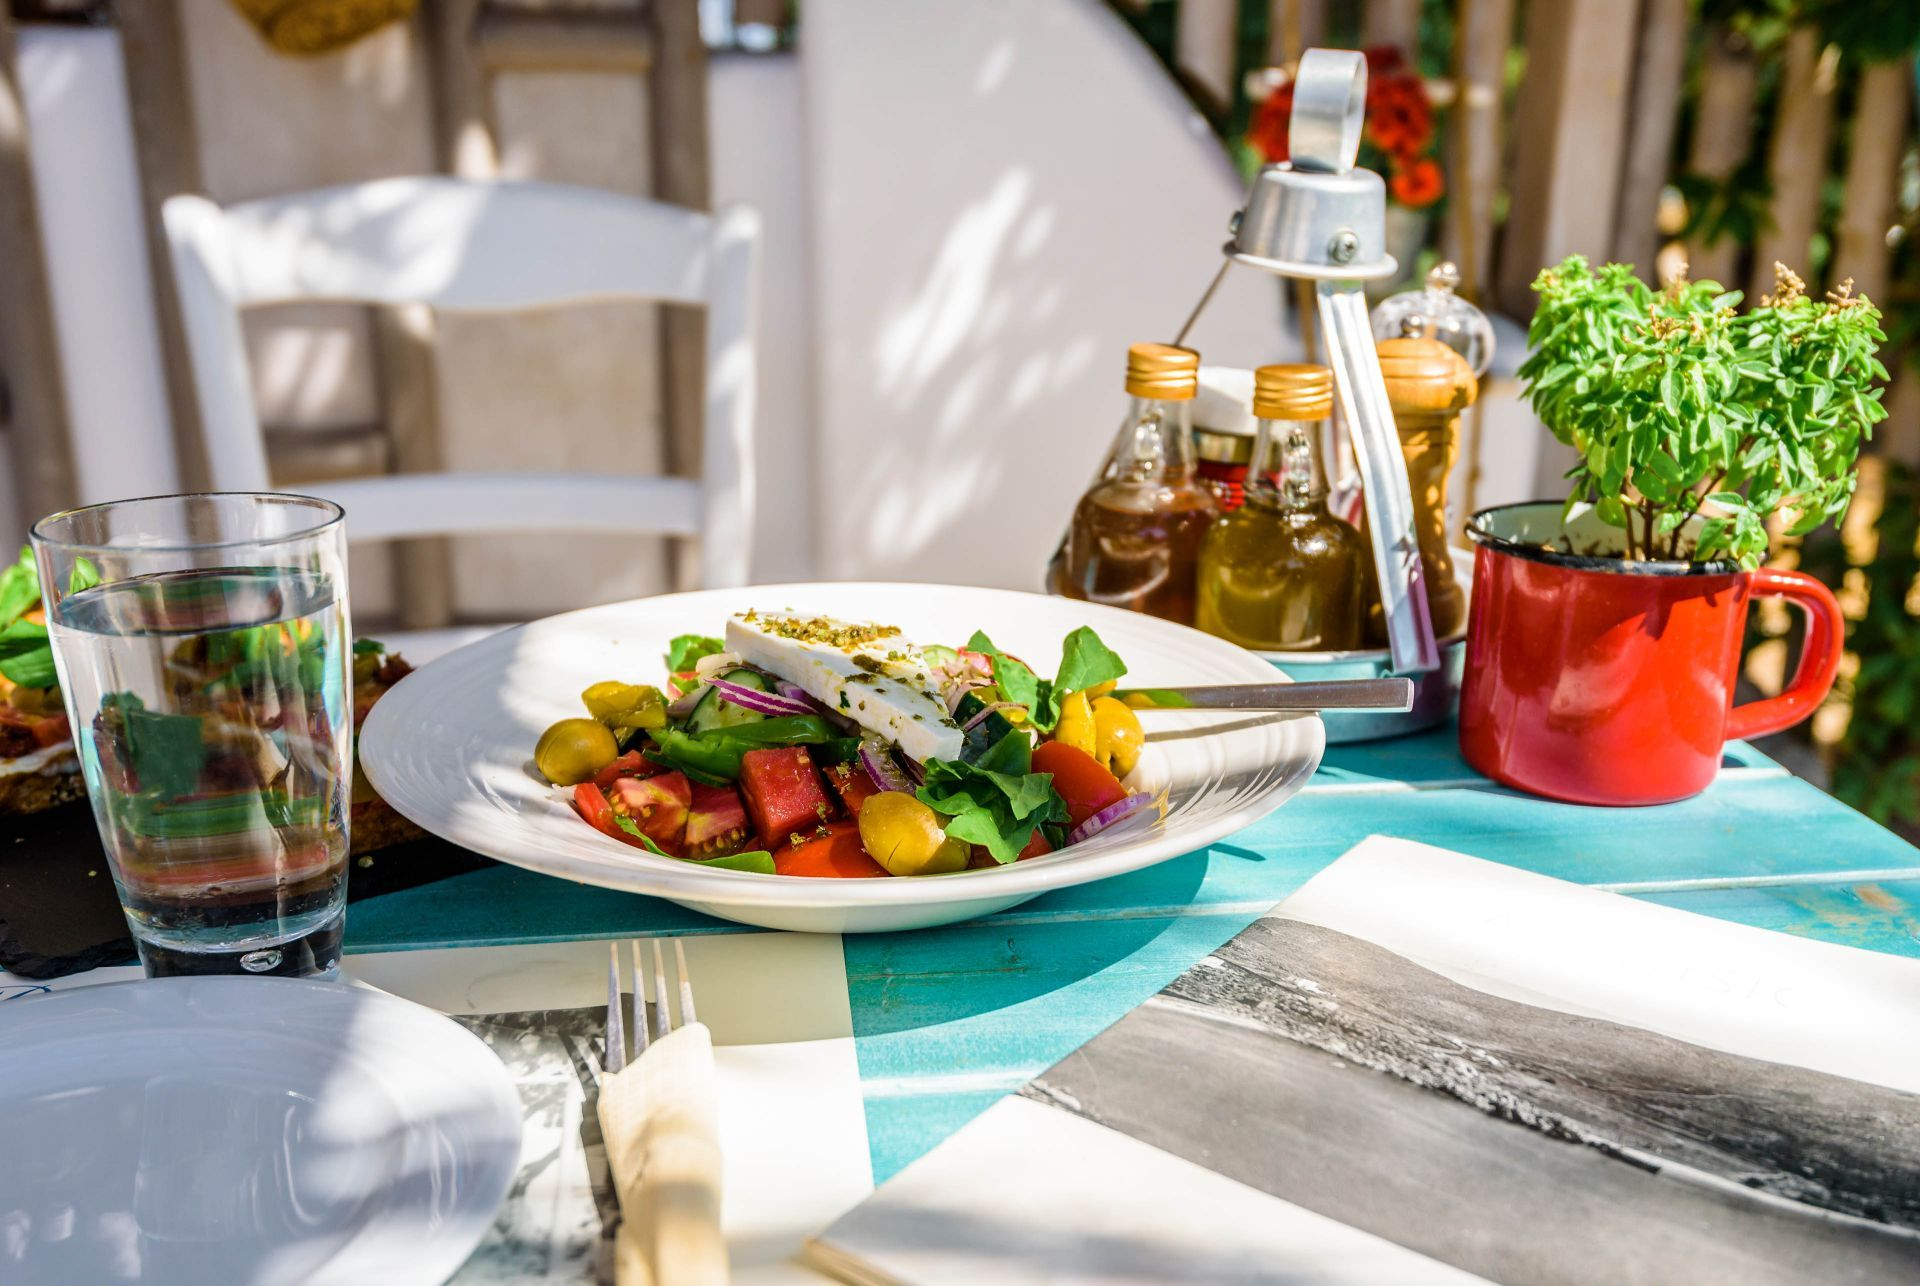 Places to eat and drink in Donoussa